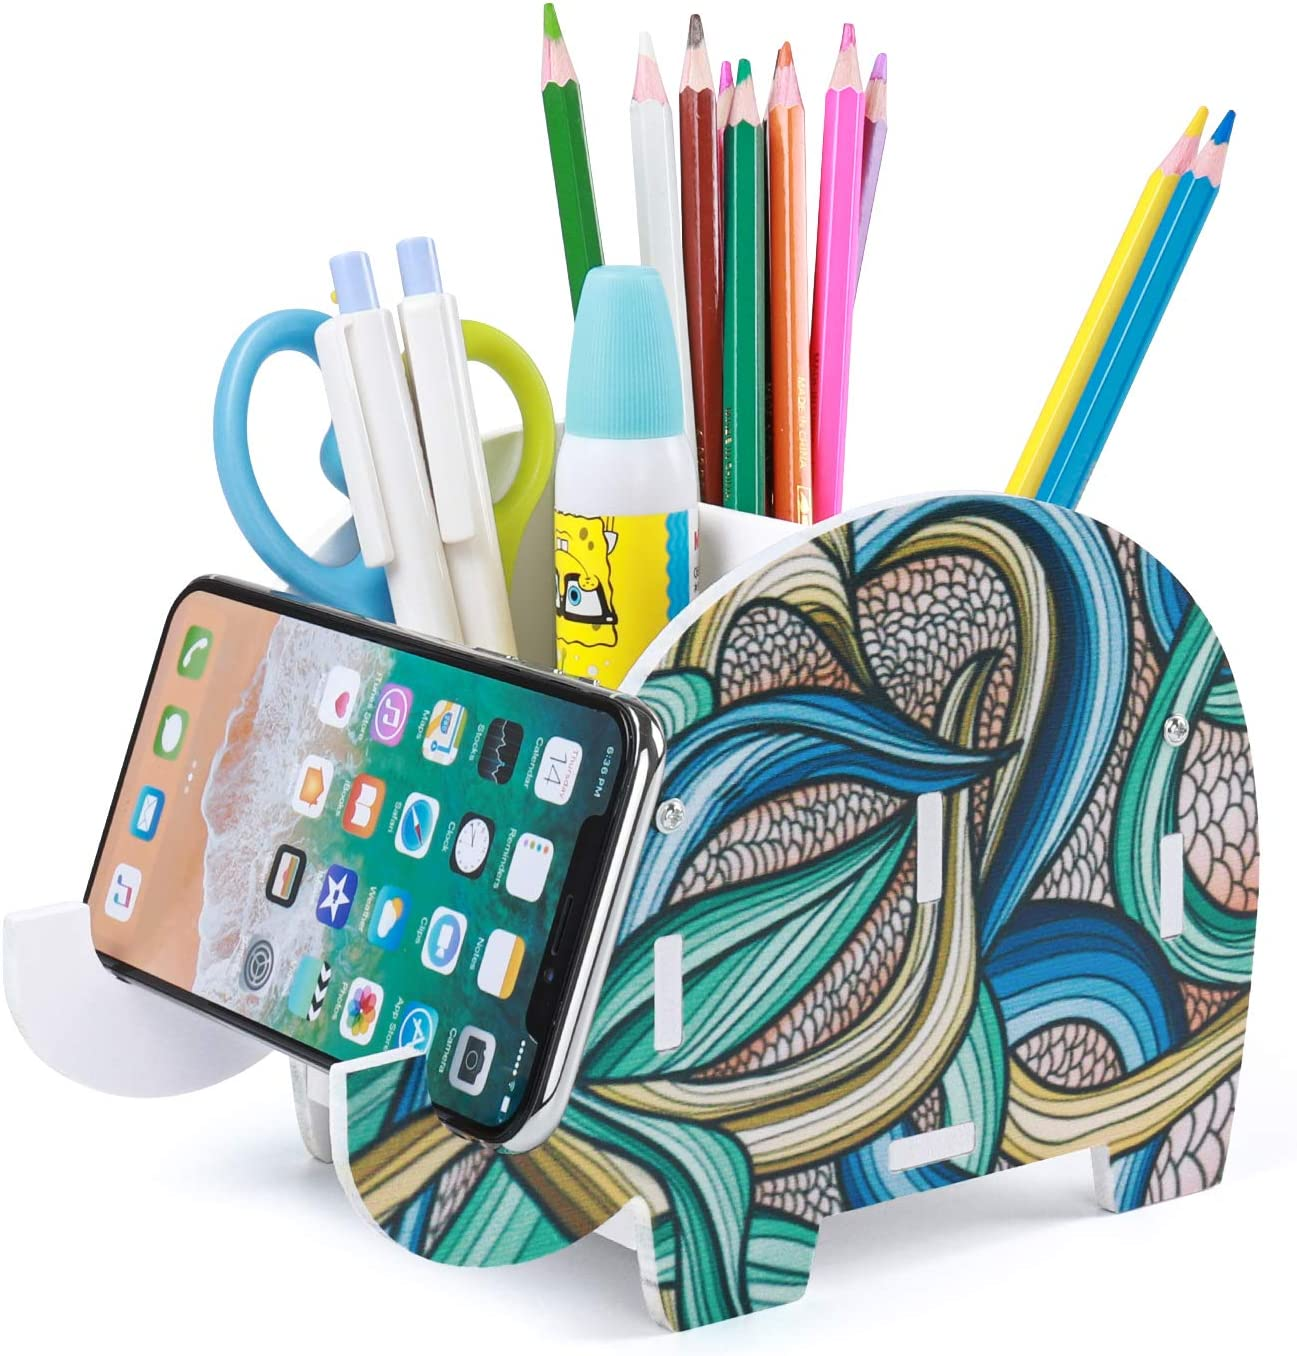 Pencil Holder Cell Phone Stand,Cute Elephant Office Accessories Tablet Desk Bracket Compatible for iPhone iPad Smartphone,Multifunctional Stationery Box Organizer